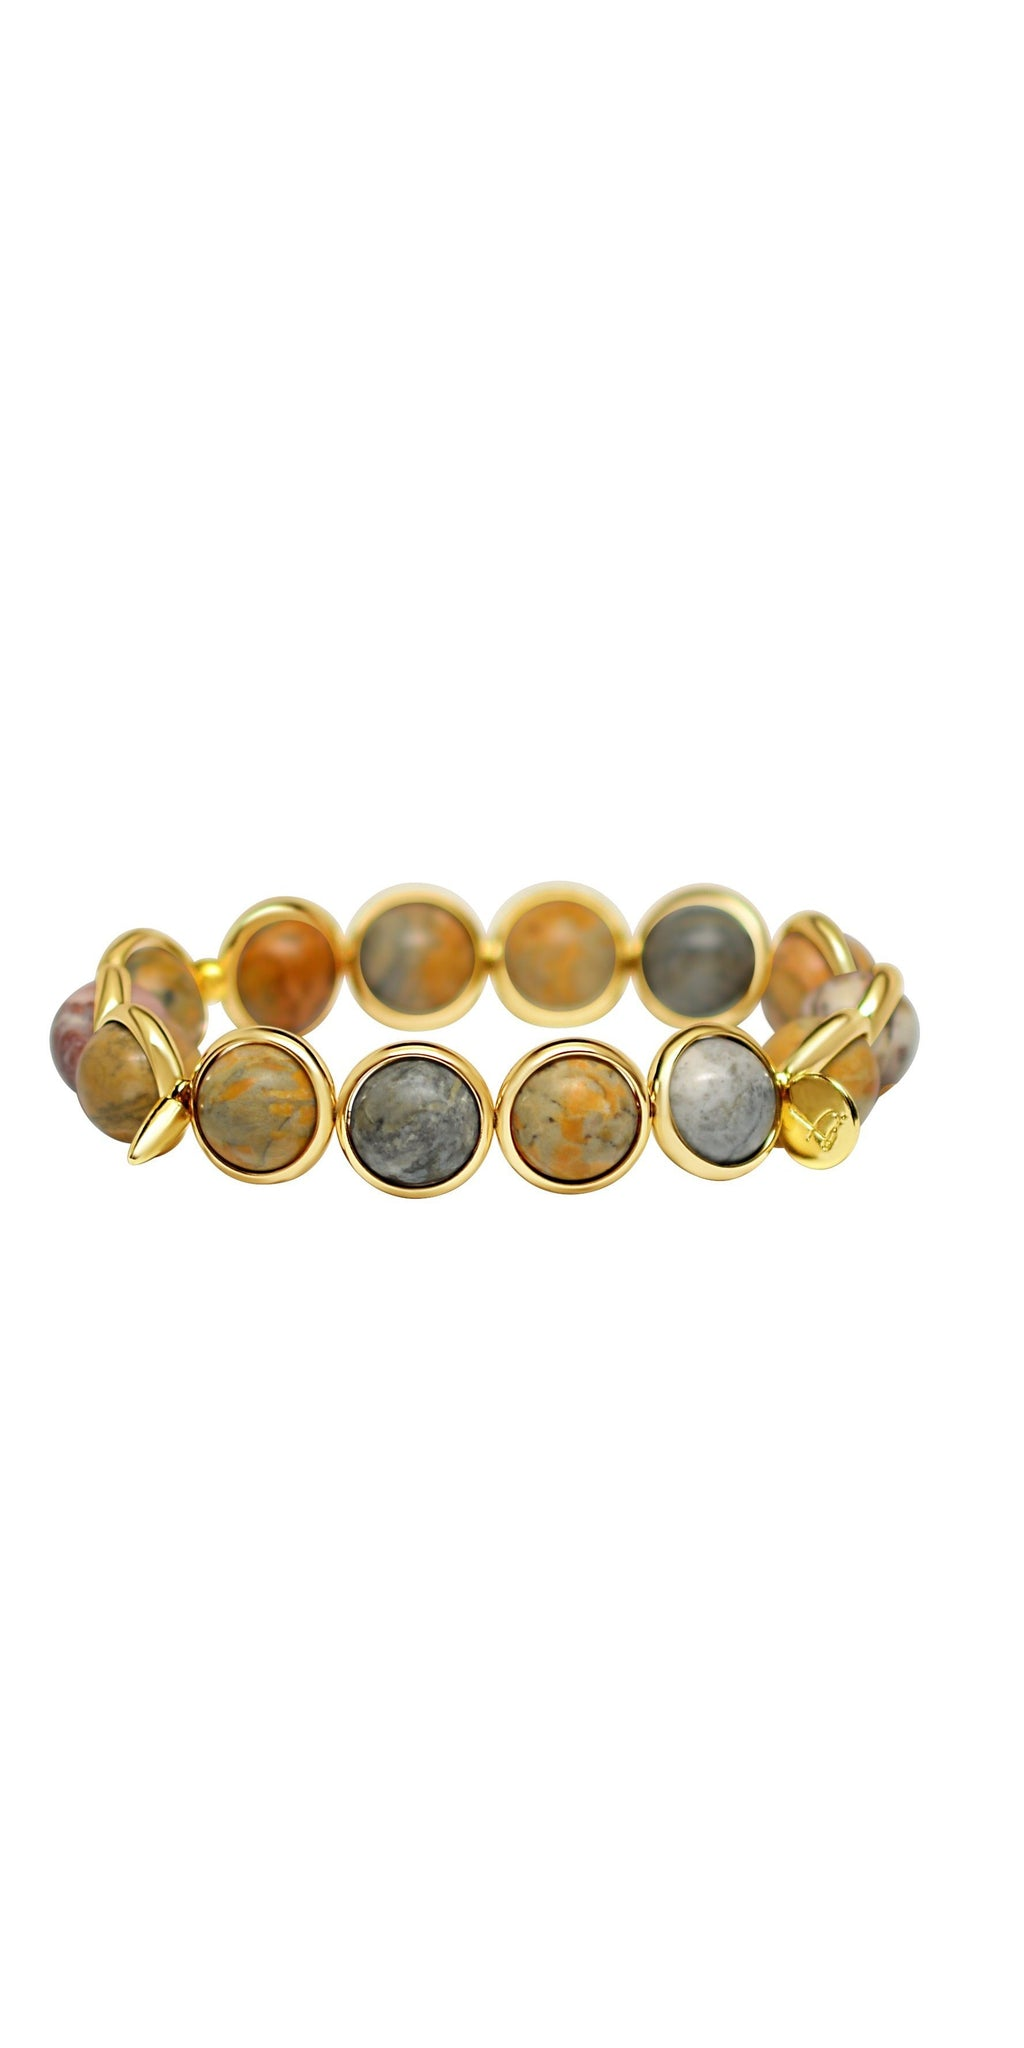 Matte Sky Eye Jasper Bead Bracelet - Gold-Sea Biscuit Del Mar